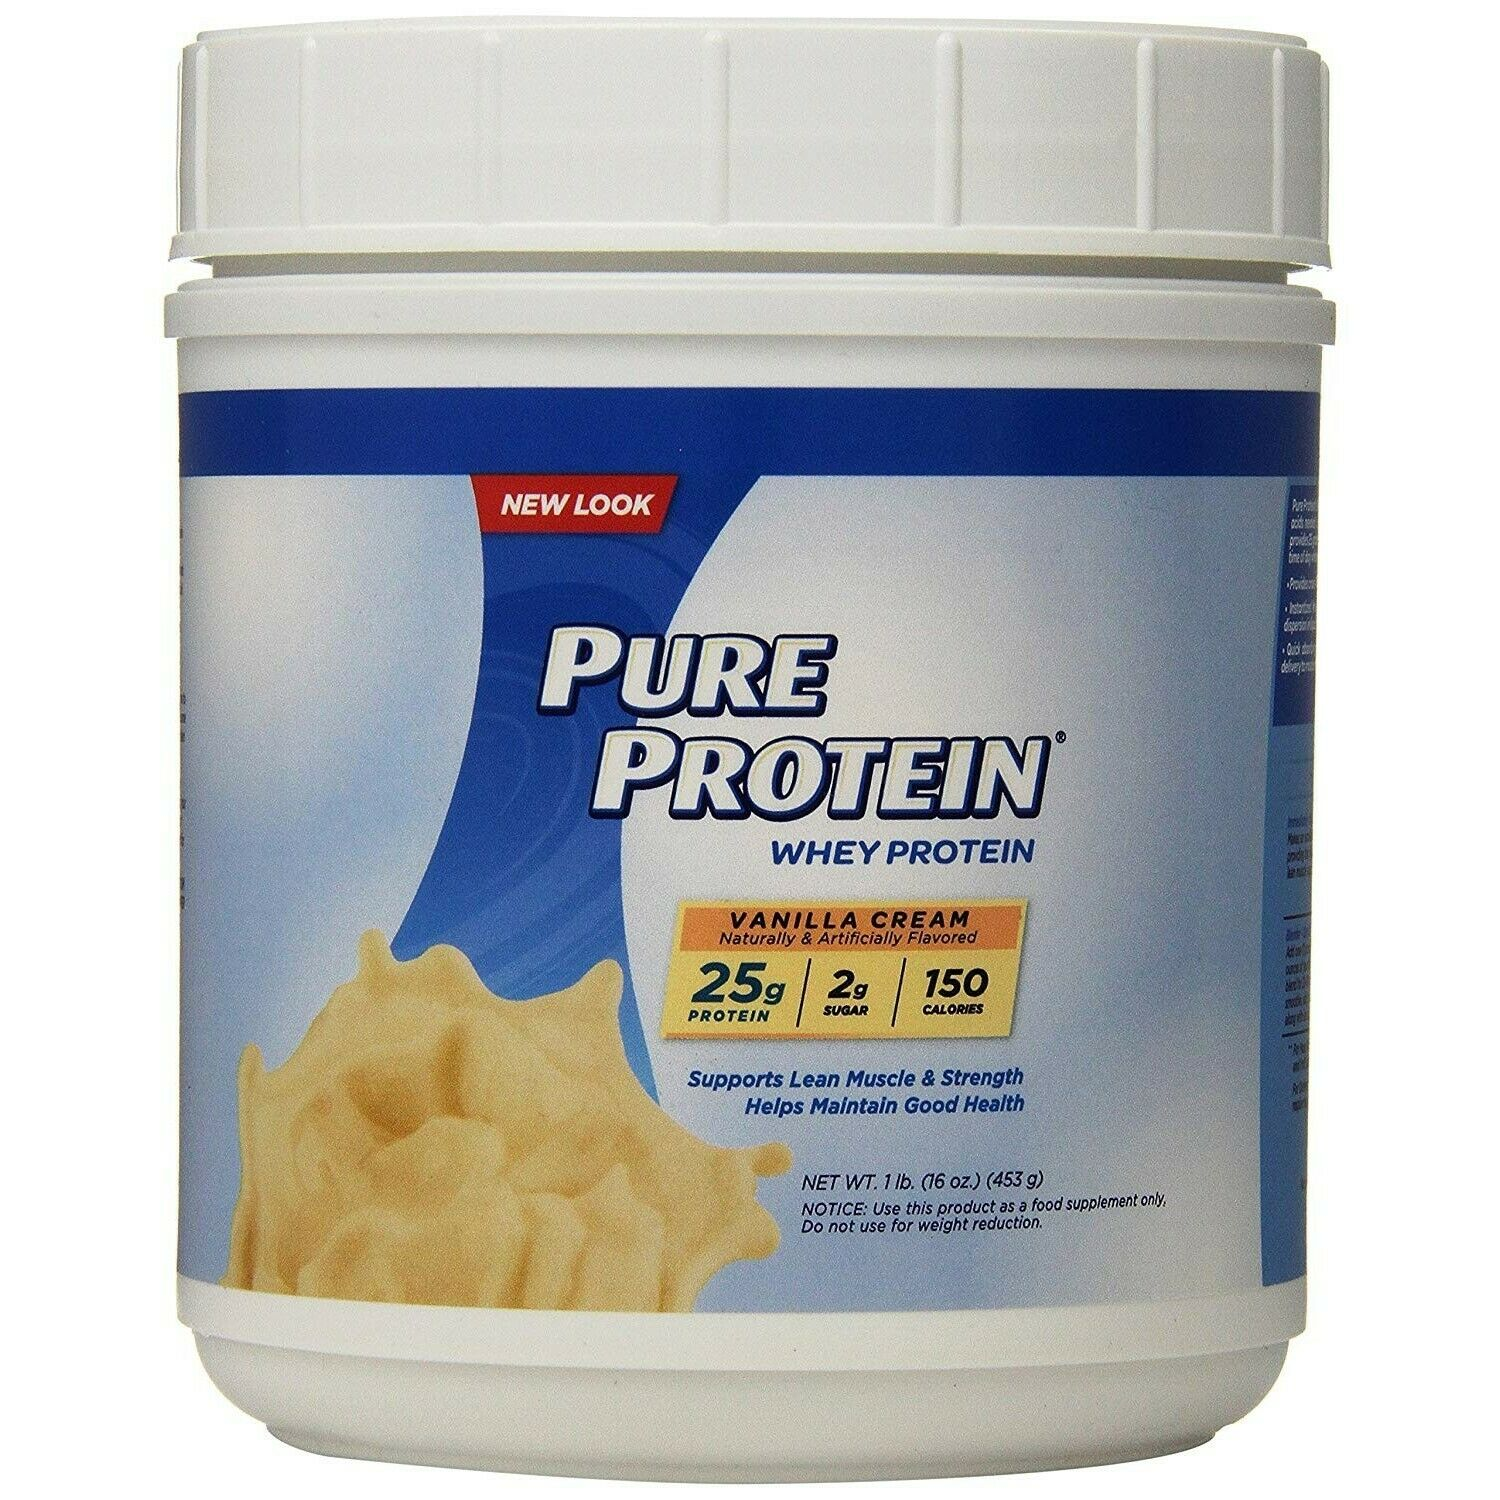 WHEY Protein Powder 1LB Vanilla Cream Pure Protein Low Sugar